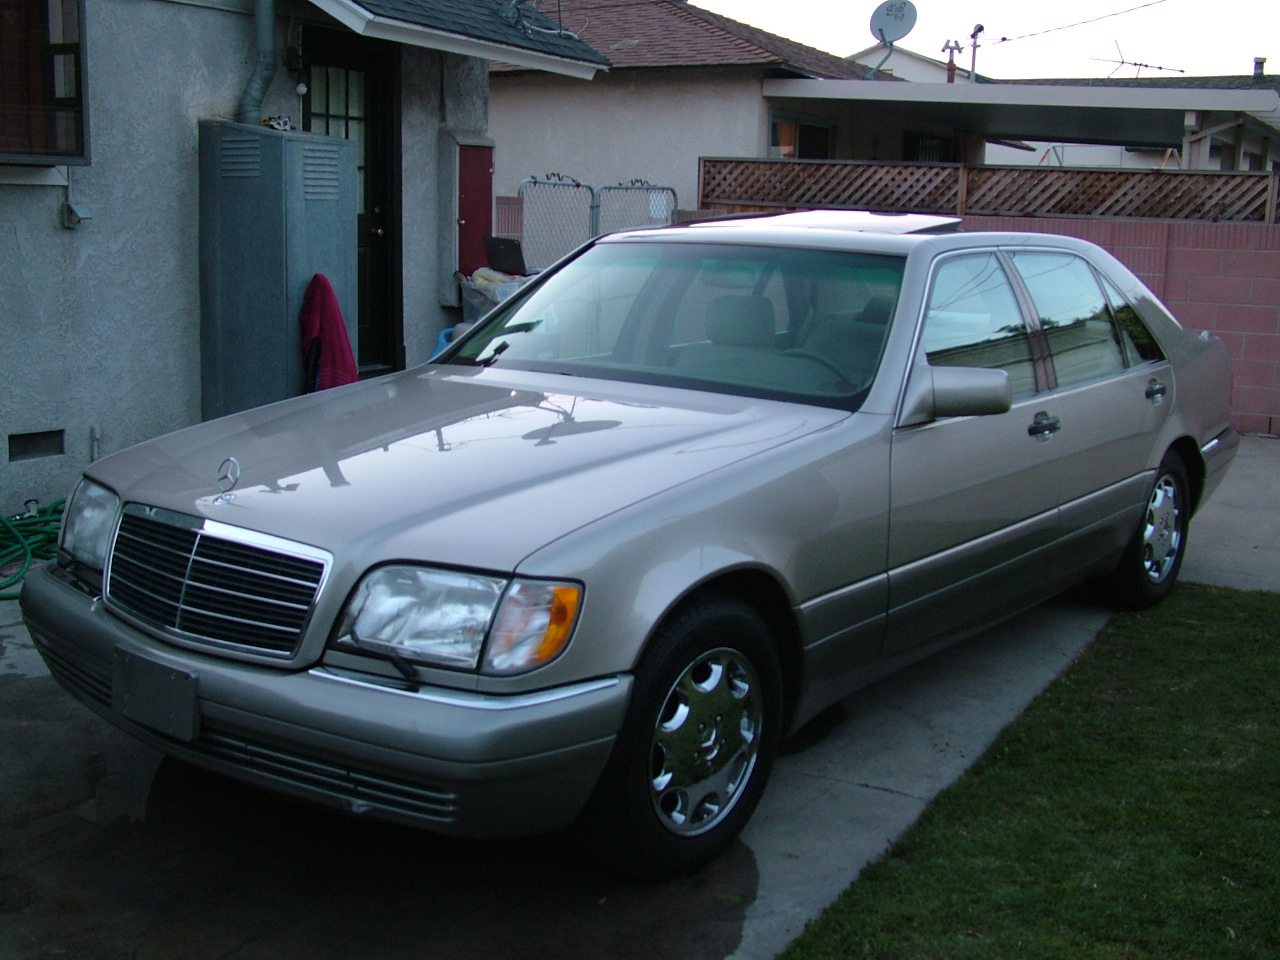 1995 mercedes benz s class other pictures cargurus for Mercedes benz 1995